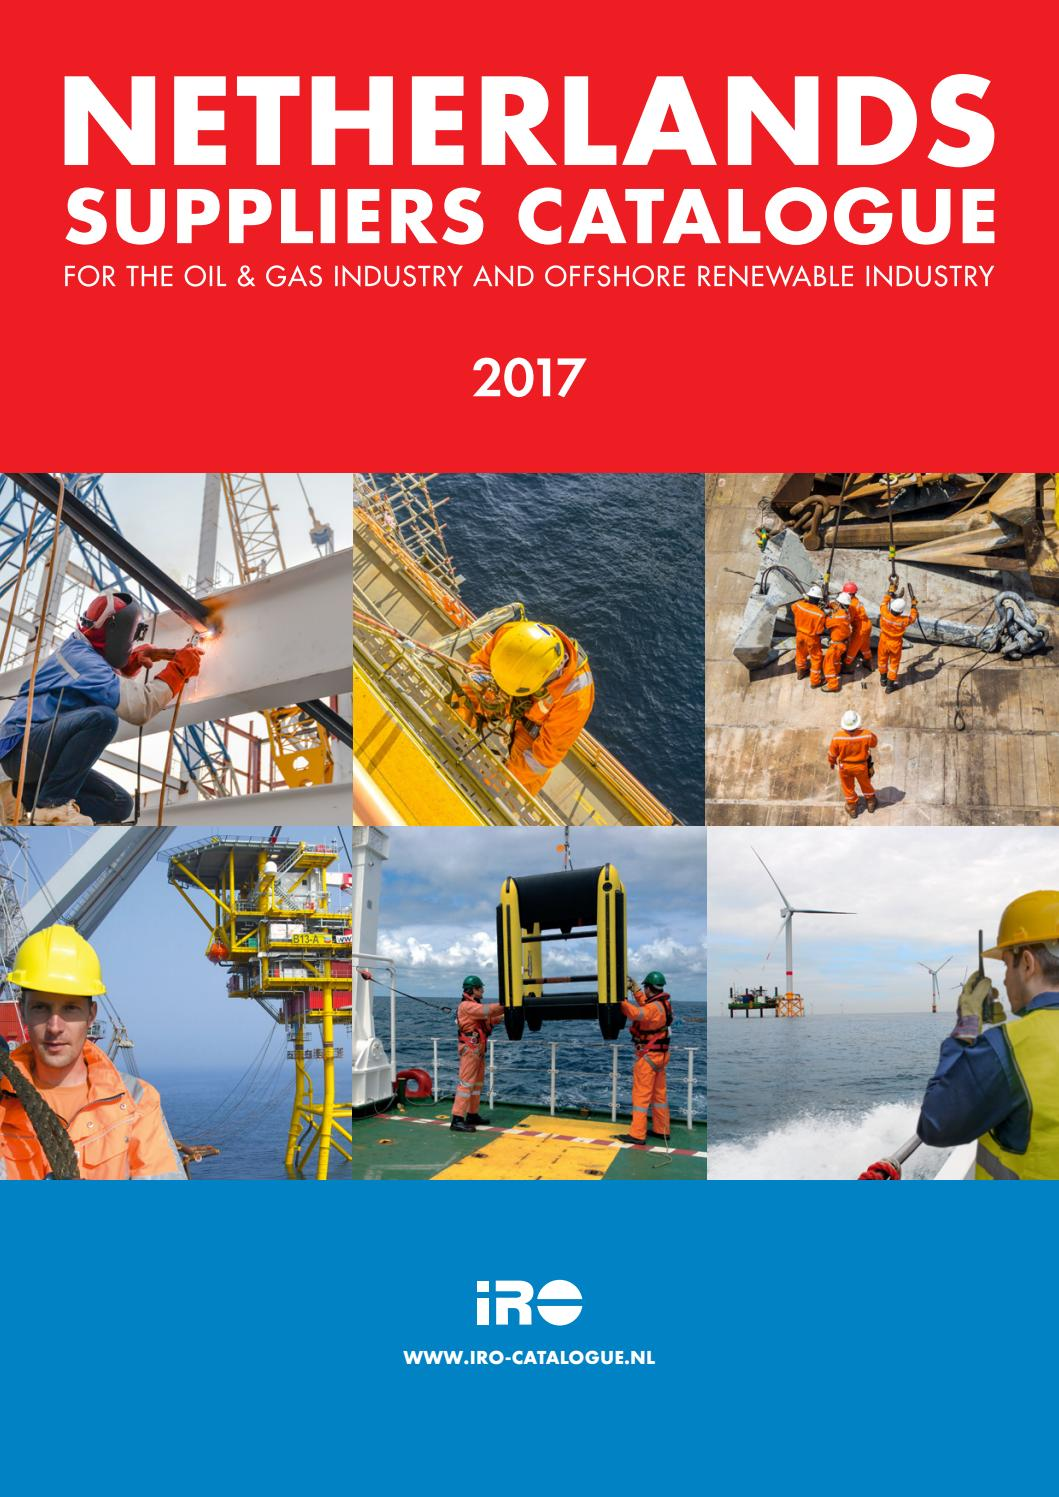 Iro Netherlands Suppliers Catalogue 2017 By Pedemex Bv Issuu - De Splinter Drachten